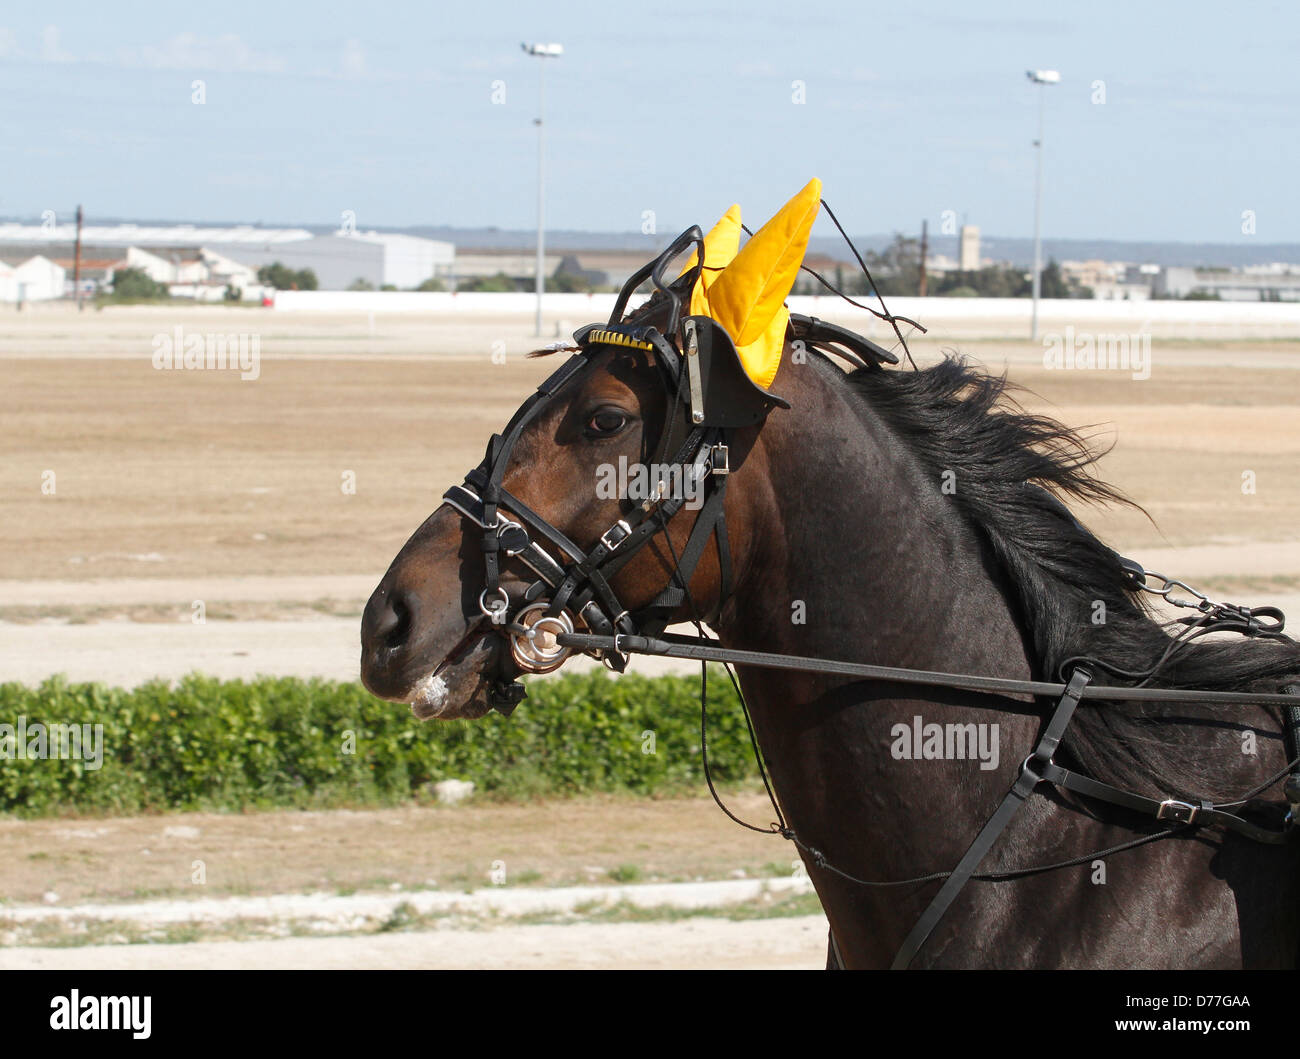 A horse wearing ear plugs is seen during harness